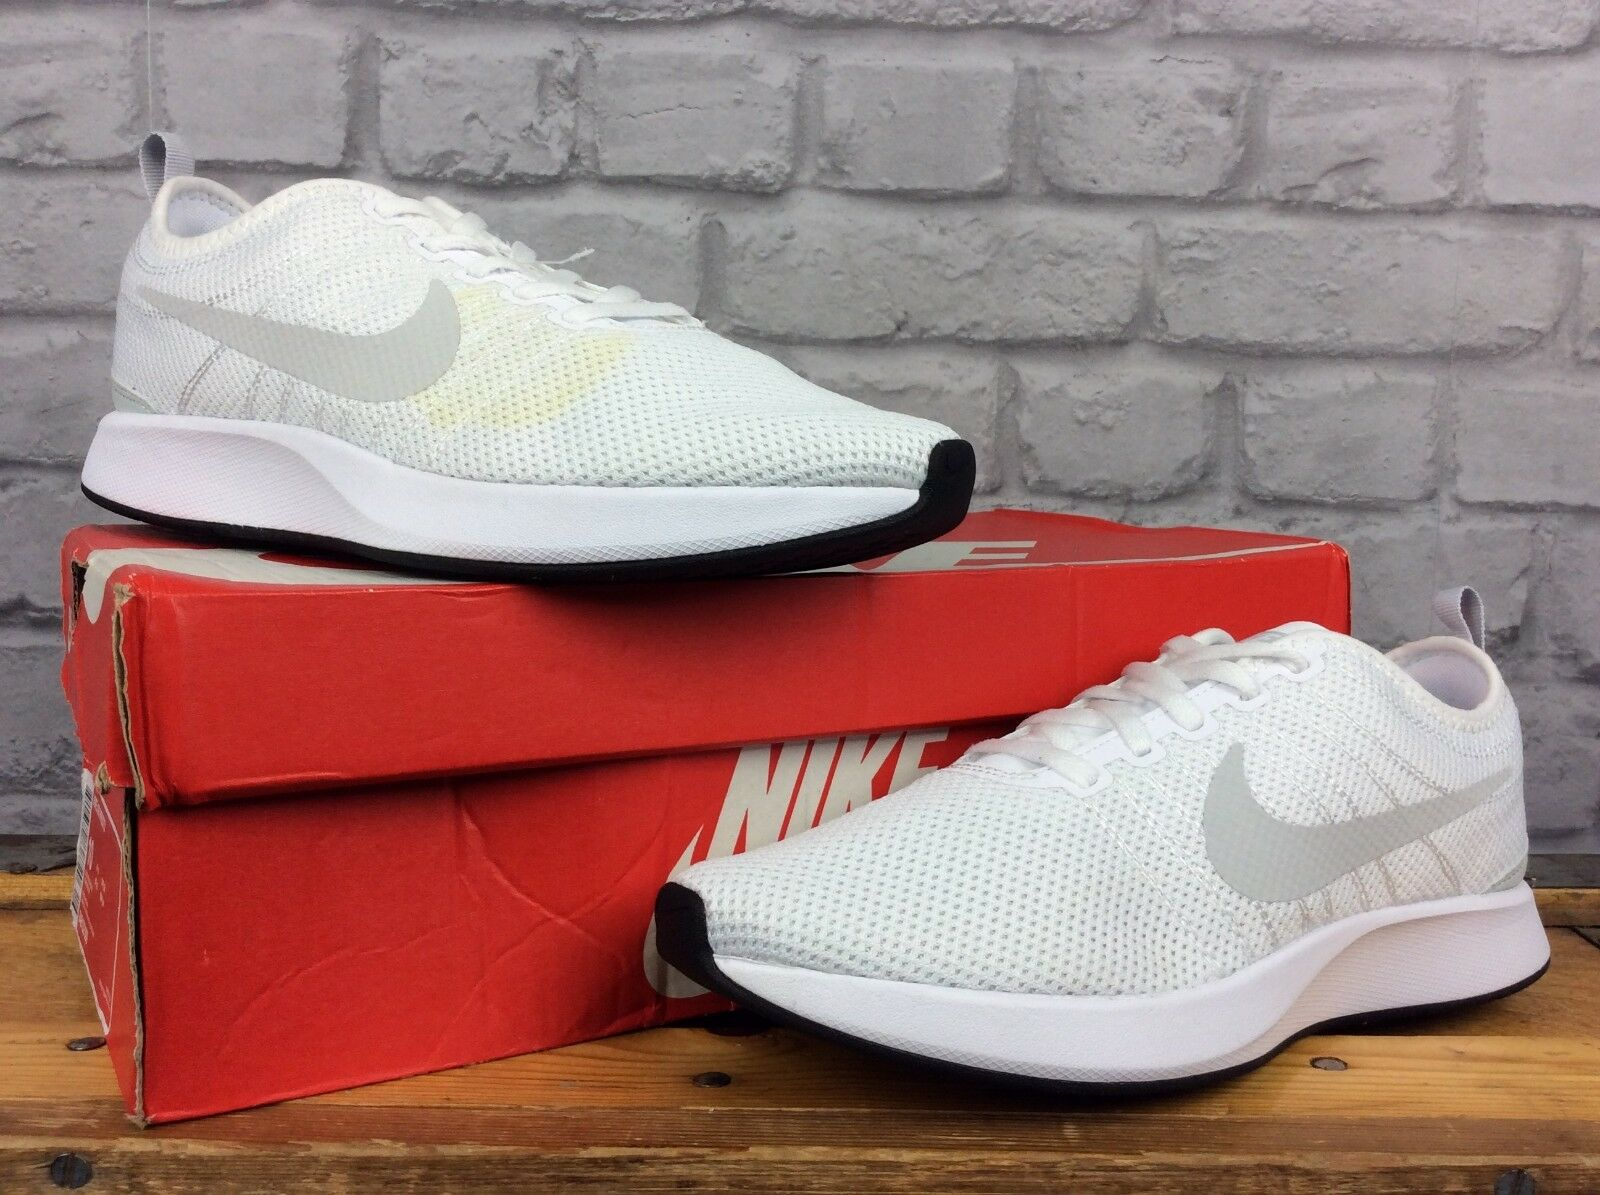 NIKE MENS DUALTONE RACER WHITE PLATINUM TRAINERS Comfortable Cheap and beautiful fashion